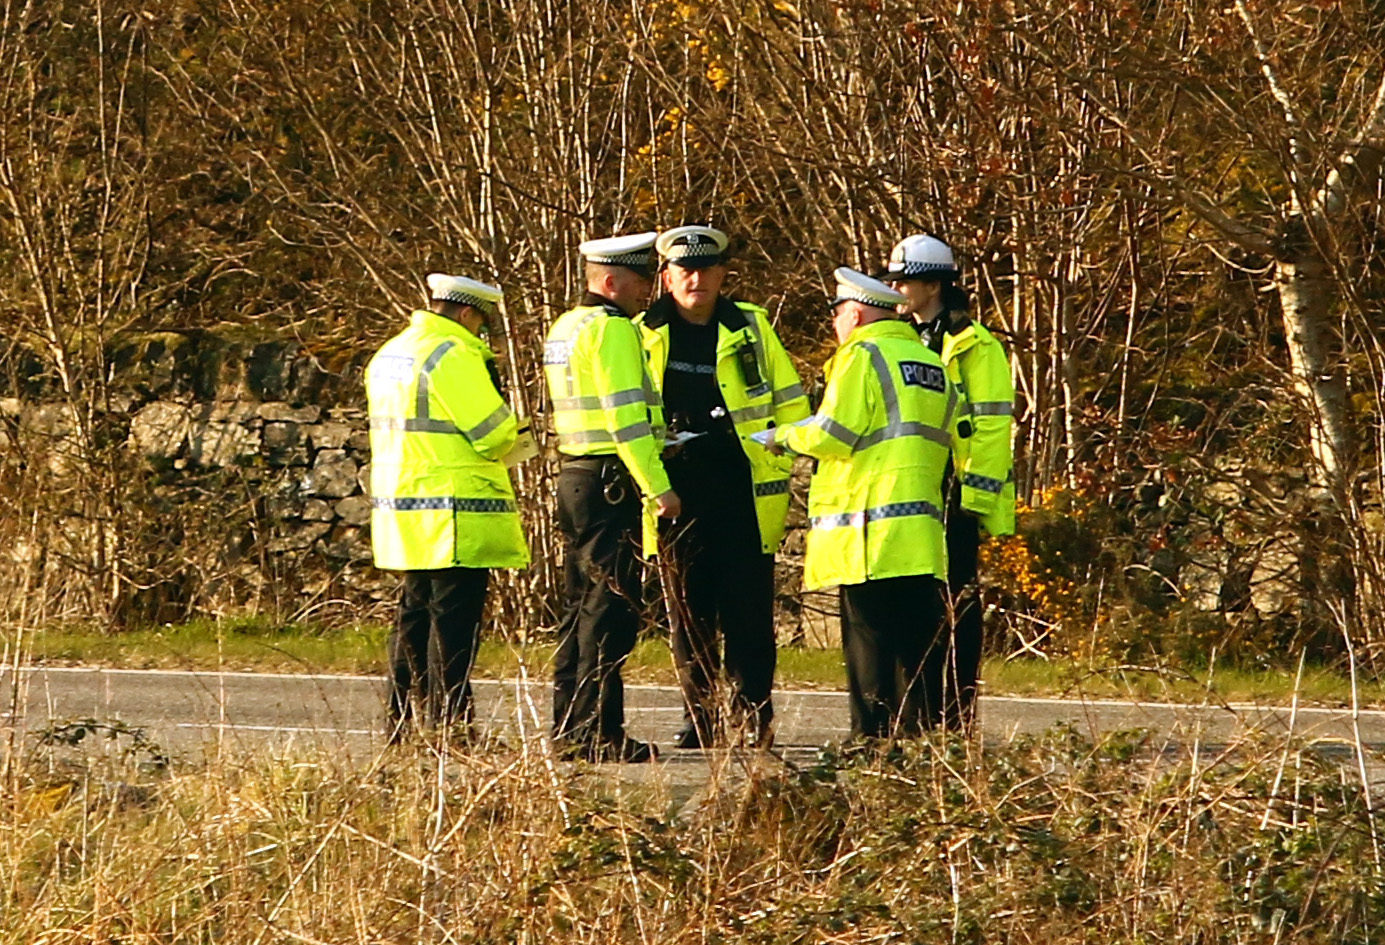 Police officers at the scene of the crash.